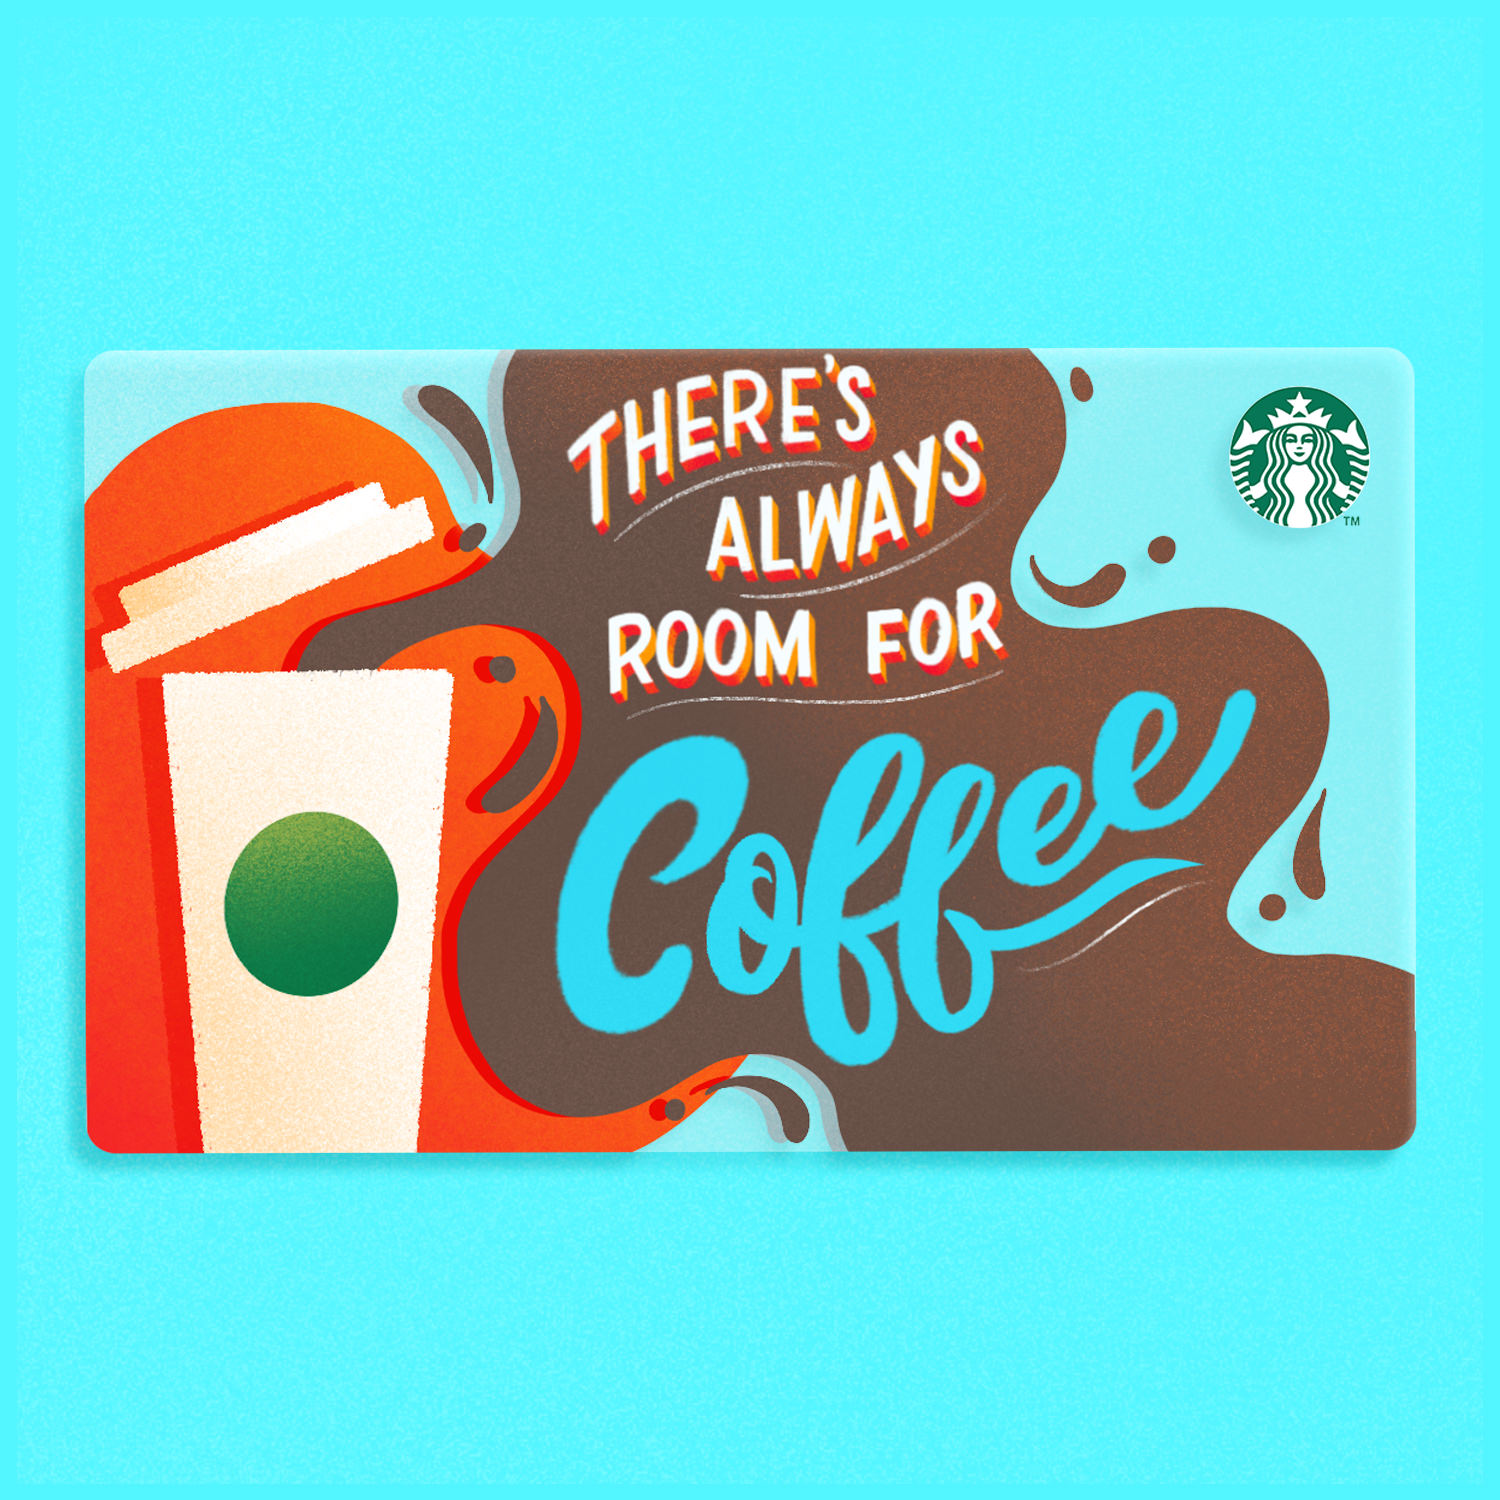 starbucks-gift-card-with-coffee-messaging-closeup